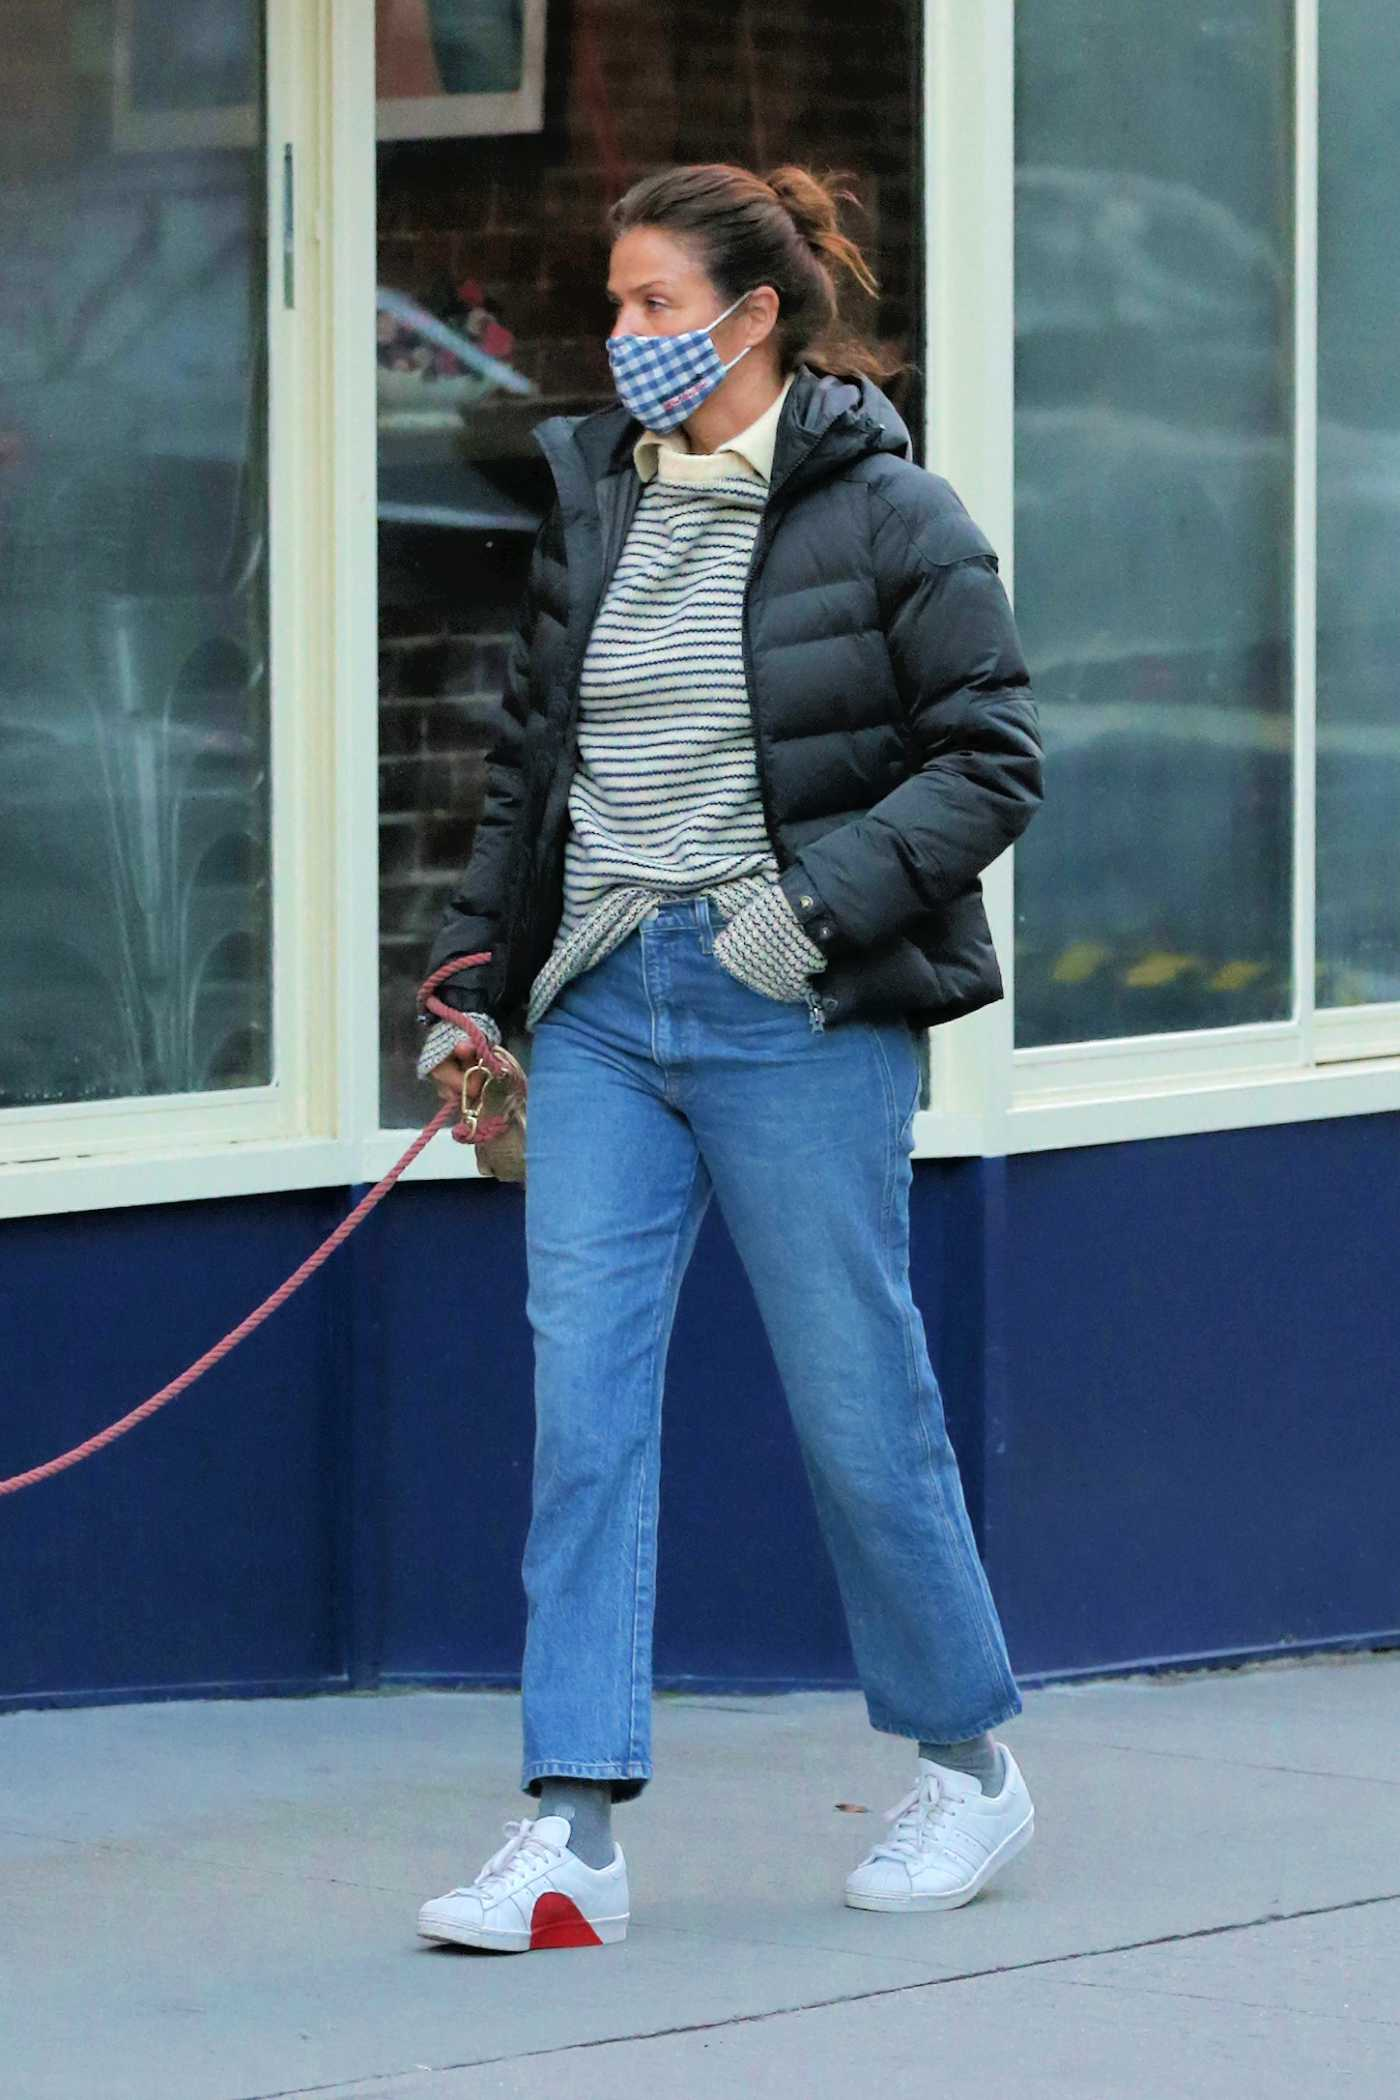 Helena Christensen in a White Sneakers Walks Her Dog in New York 02/16/2021